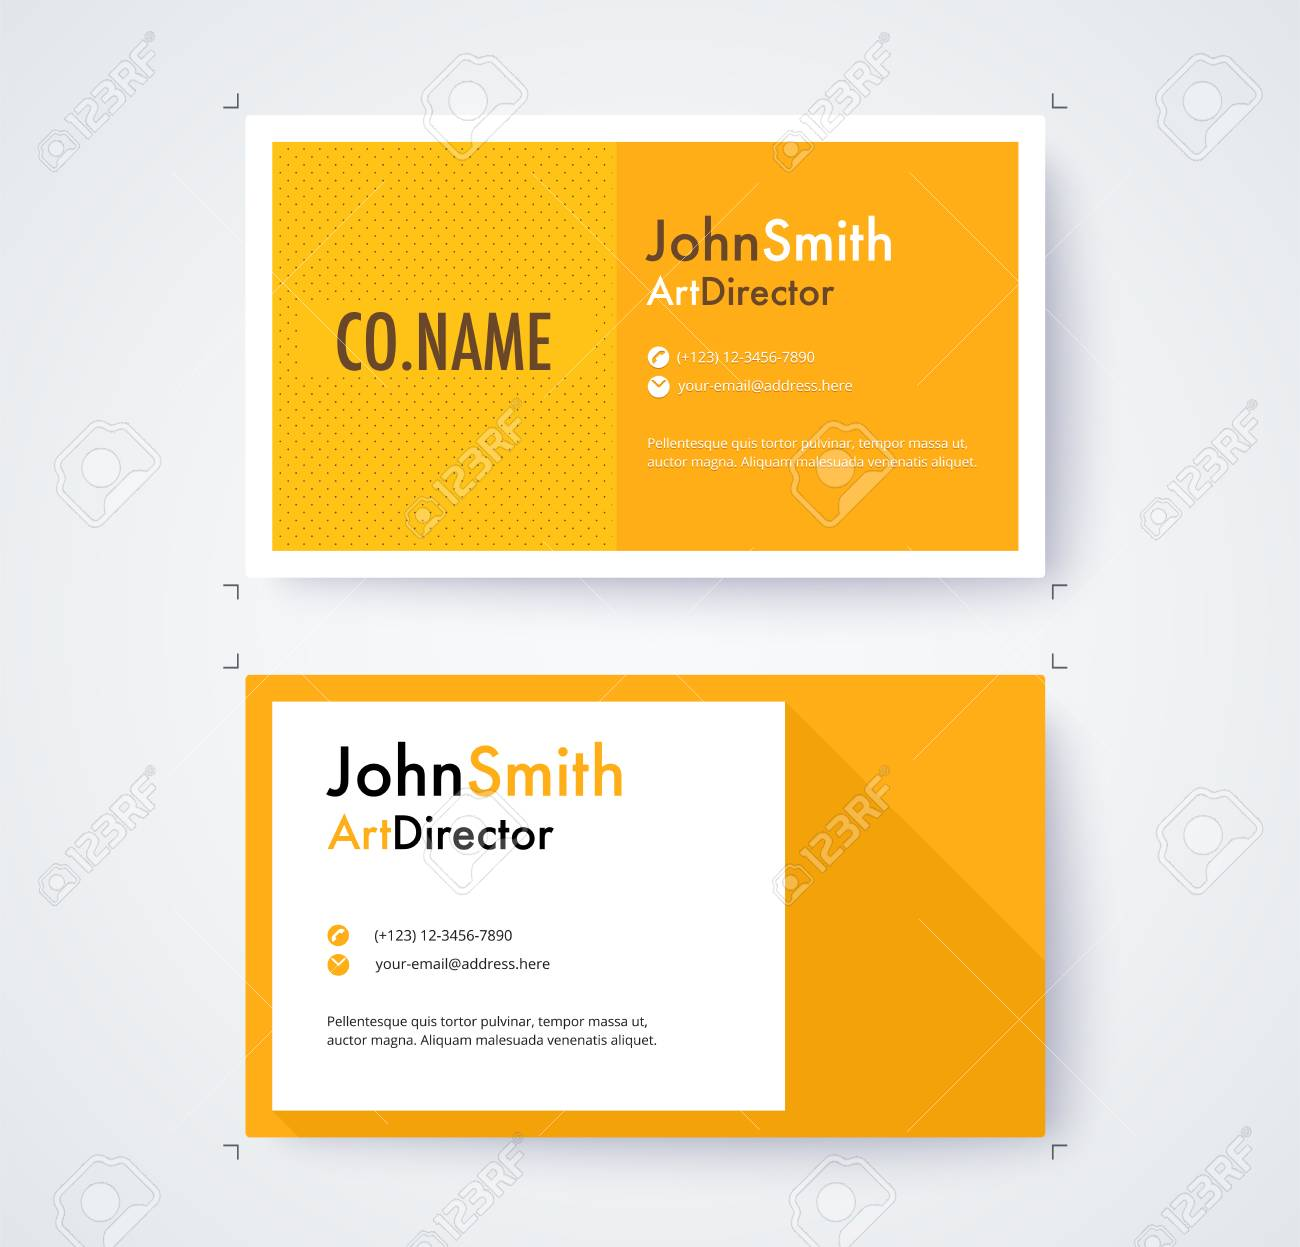 Business Card Template For Commercial Design On White Background